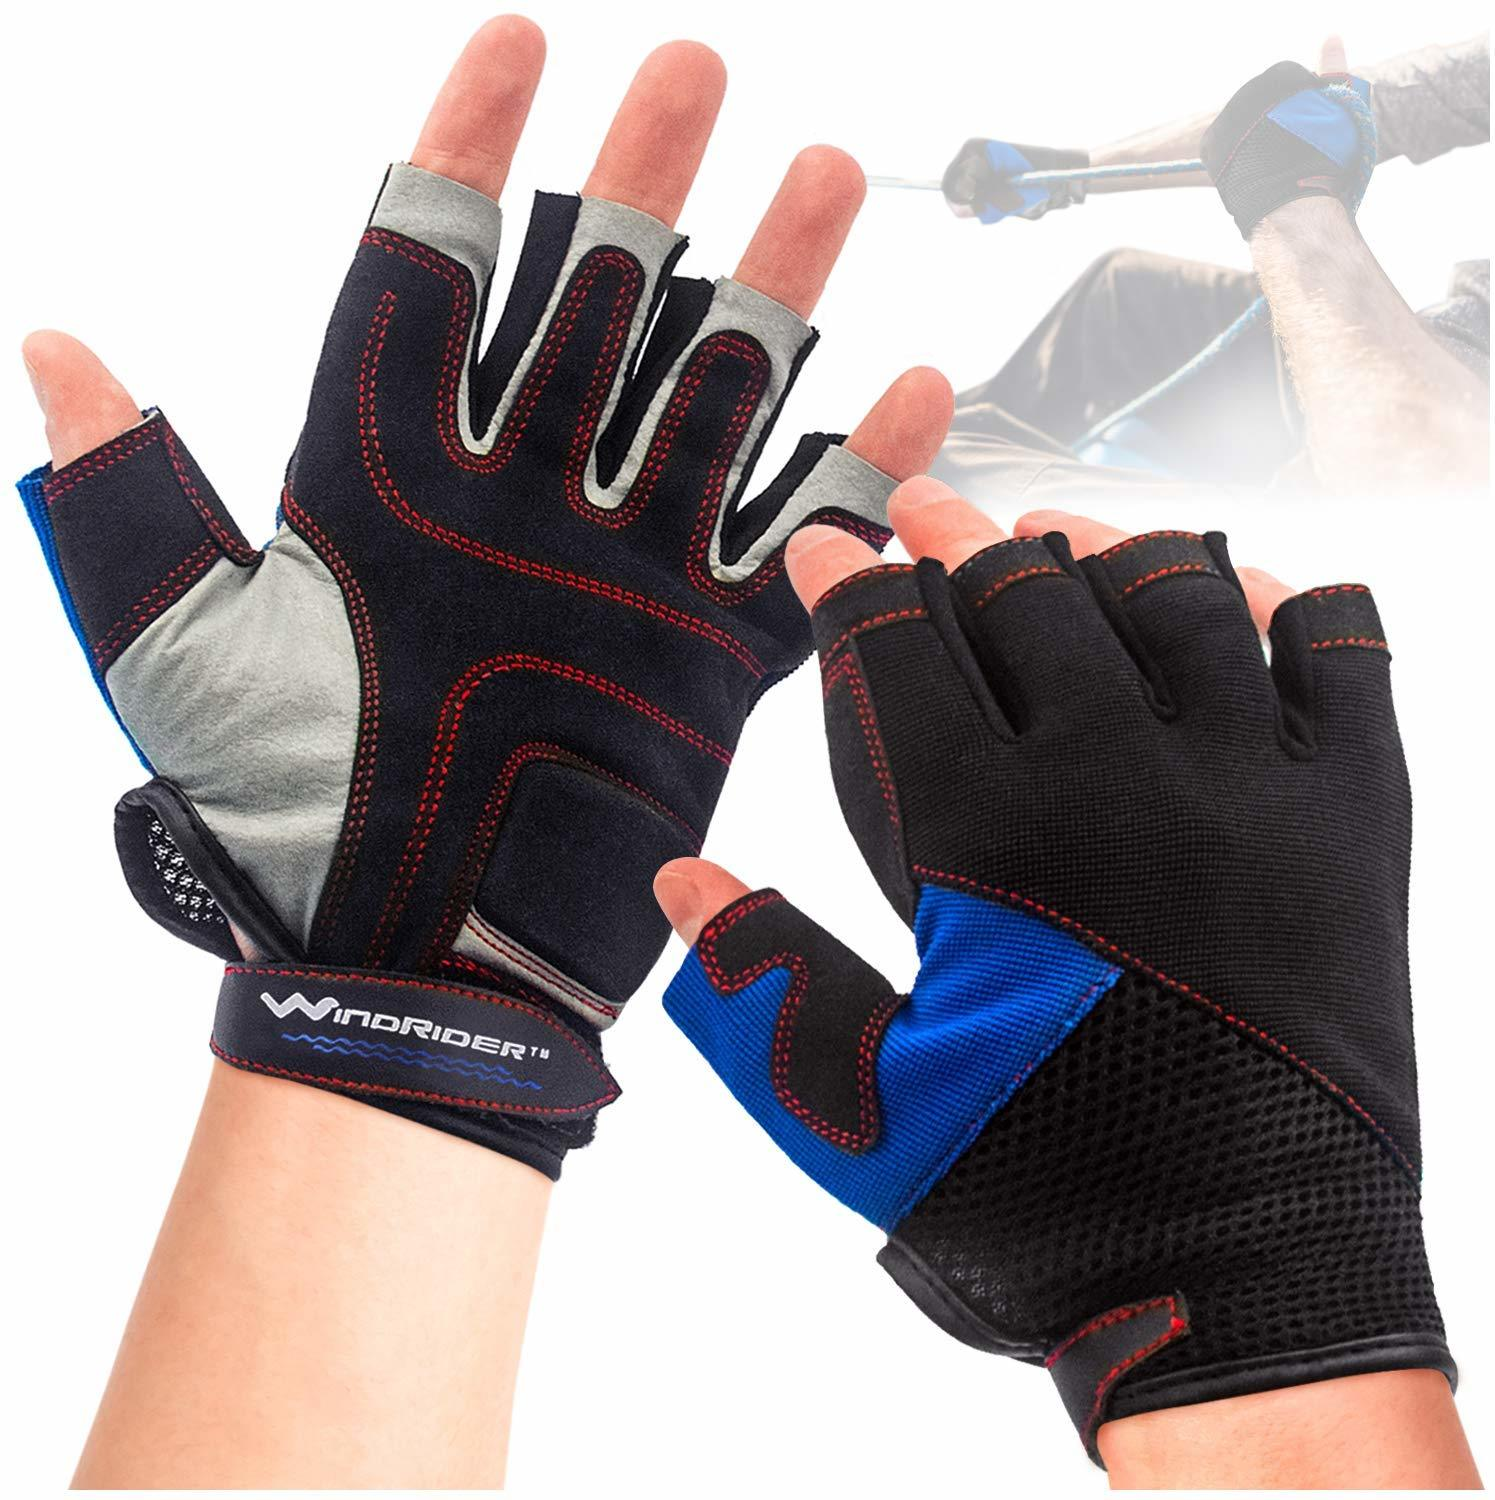 10 Sailing Gloves that will Protect Your Hands While Doing Water Sports 8